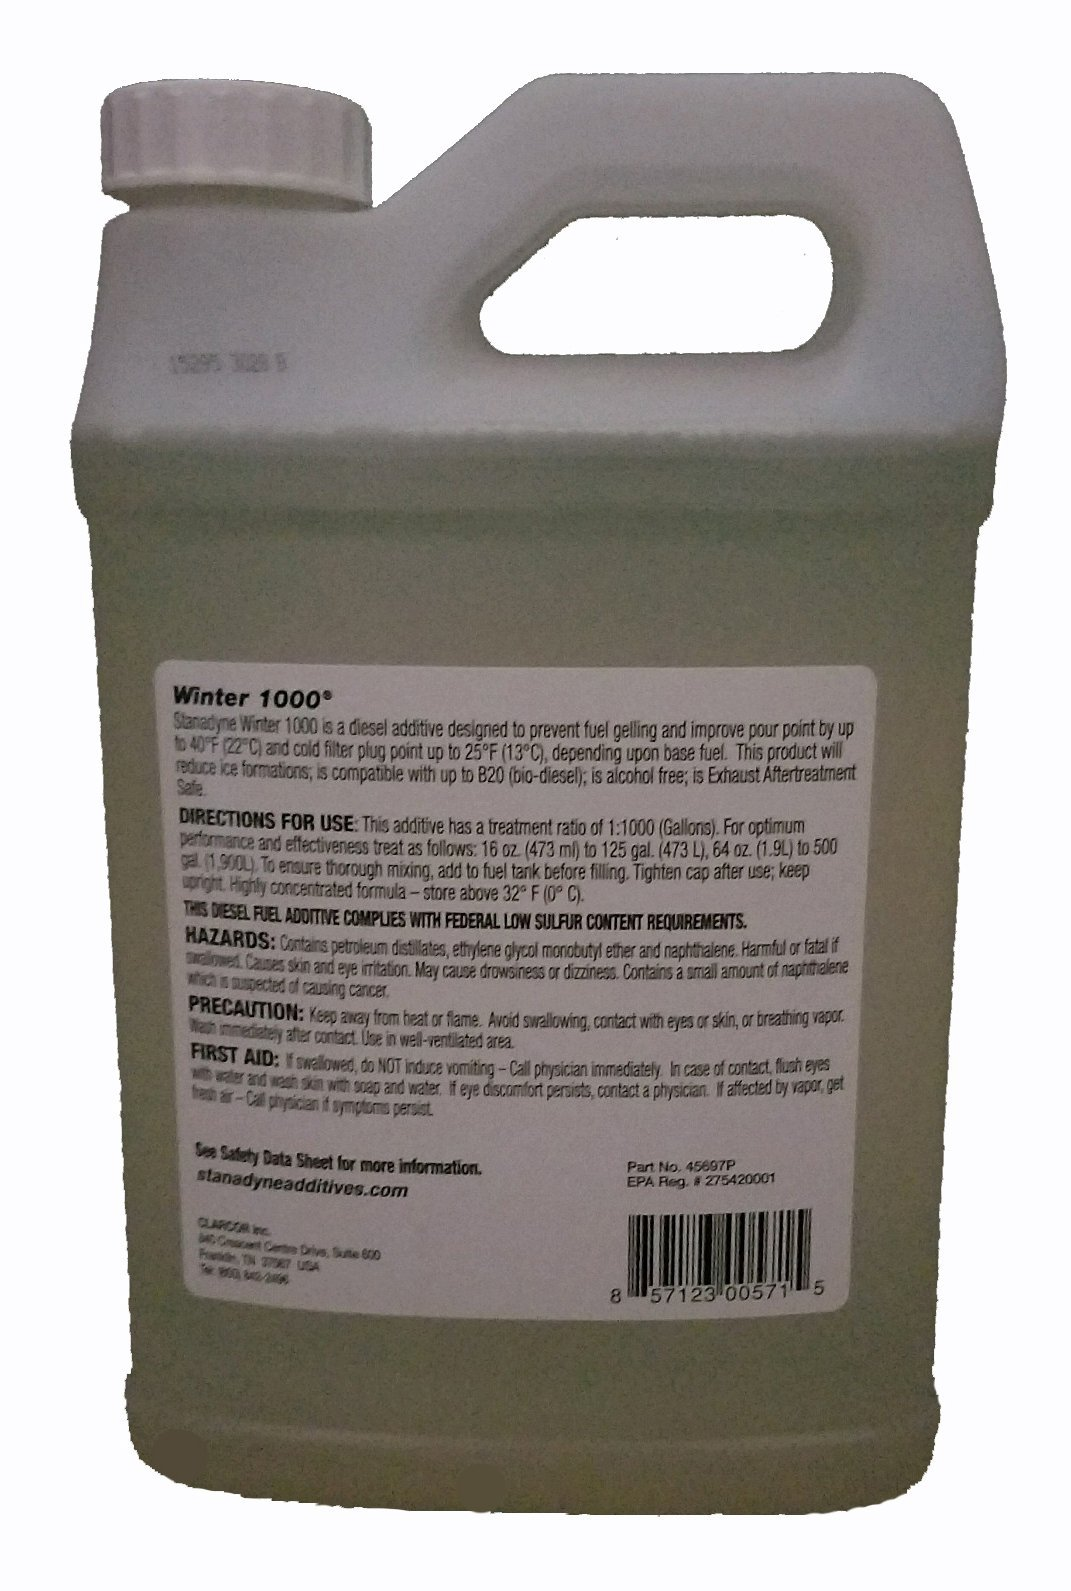 Stanadyne Winter 1000 | Case of 6 - 1/2 Gallon Jugs | Treats 3000 Gal of diesel fuel | Part # 45697 by Stanadyne Winter 1000